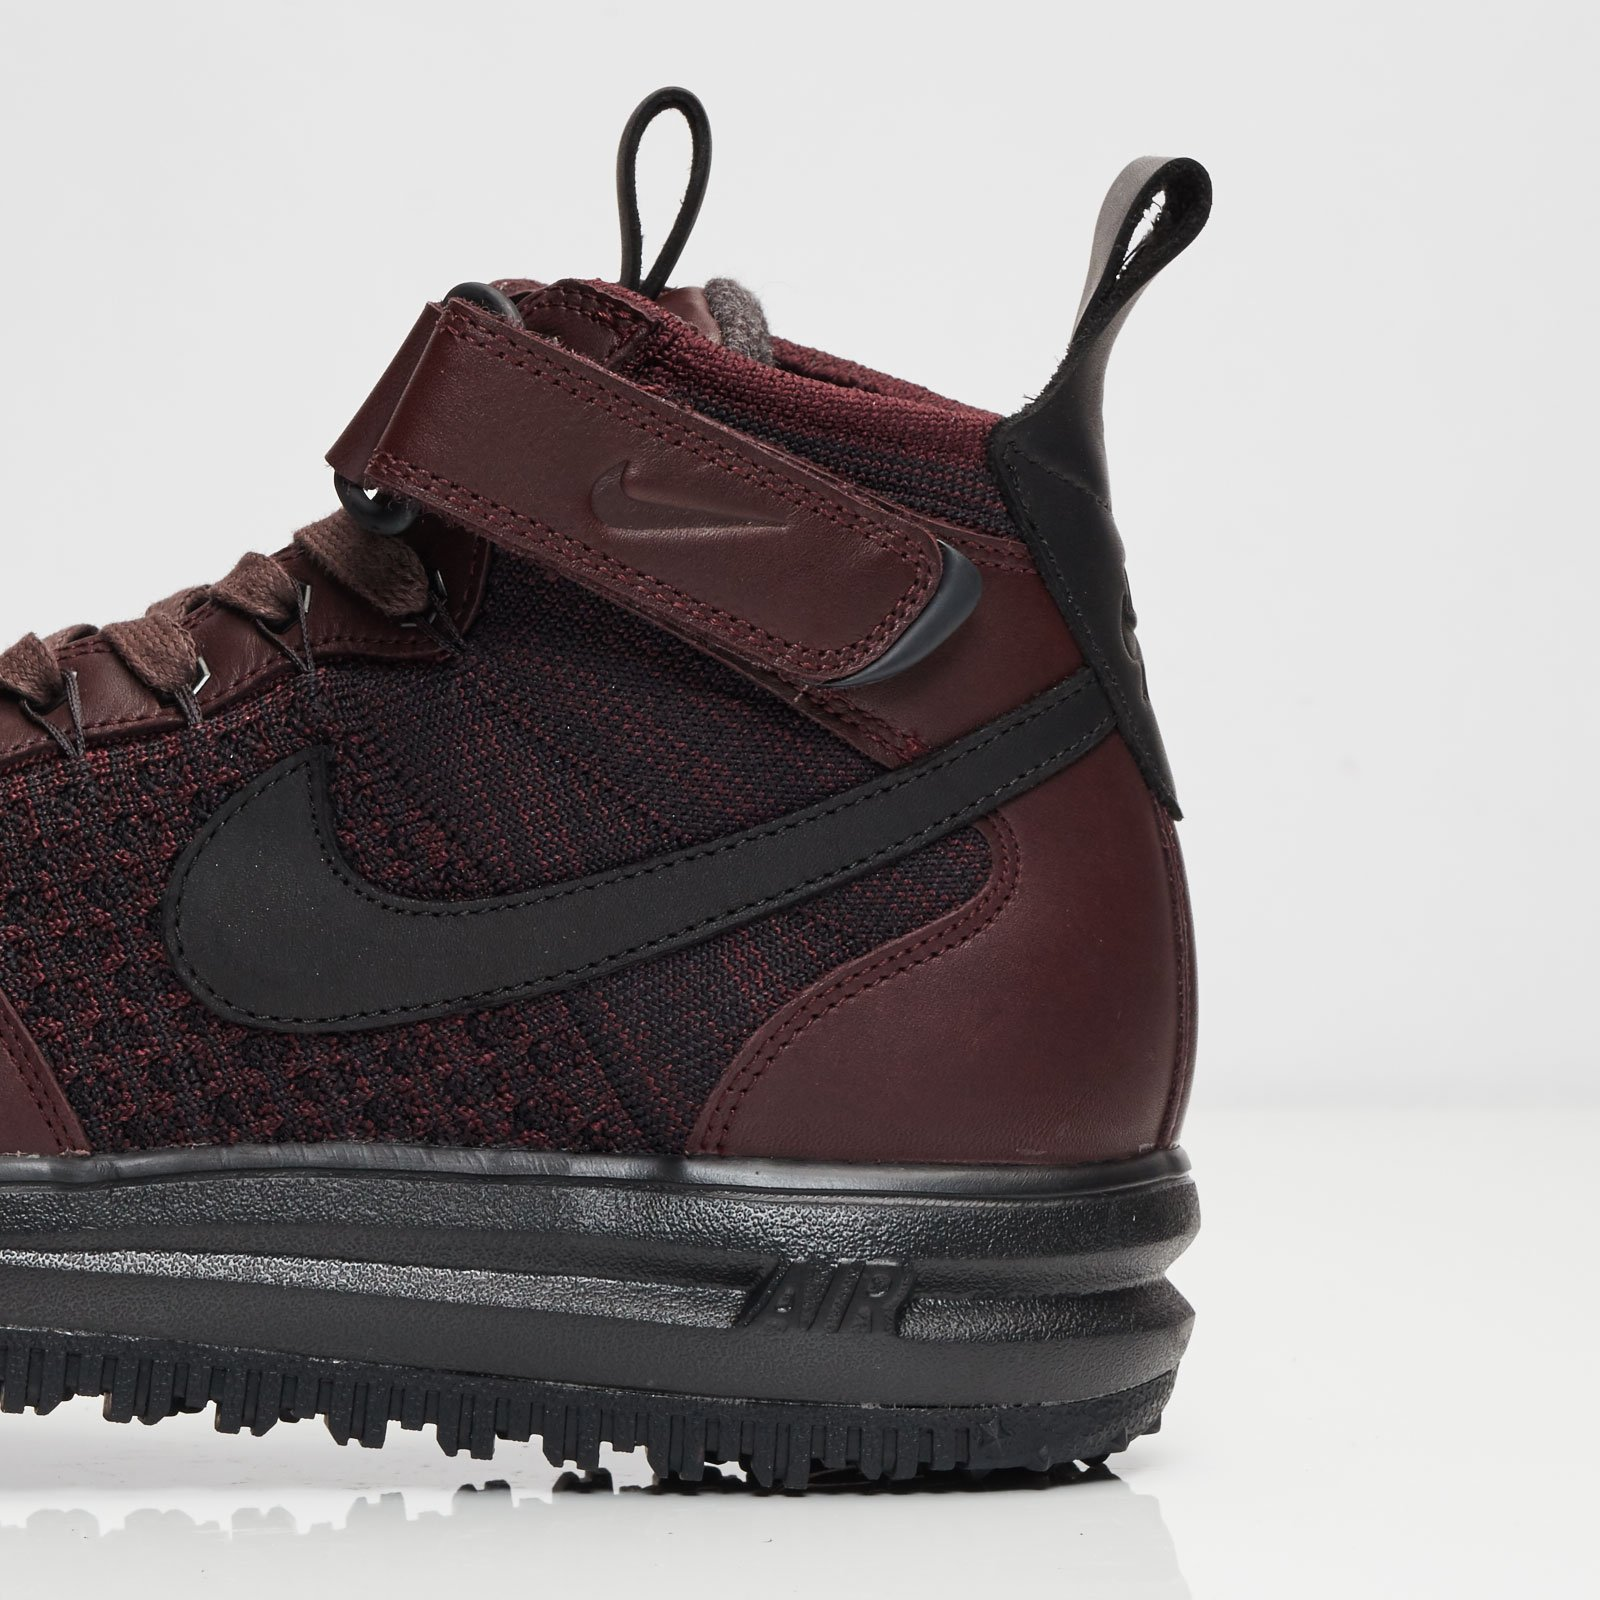 outlet store 12ab1 039f5 Nike Lunar Force 1 Flyknit Workboot - 6. Close